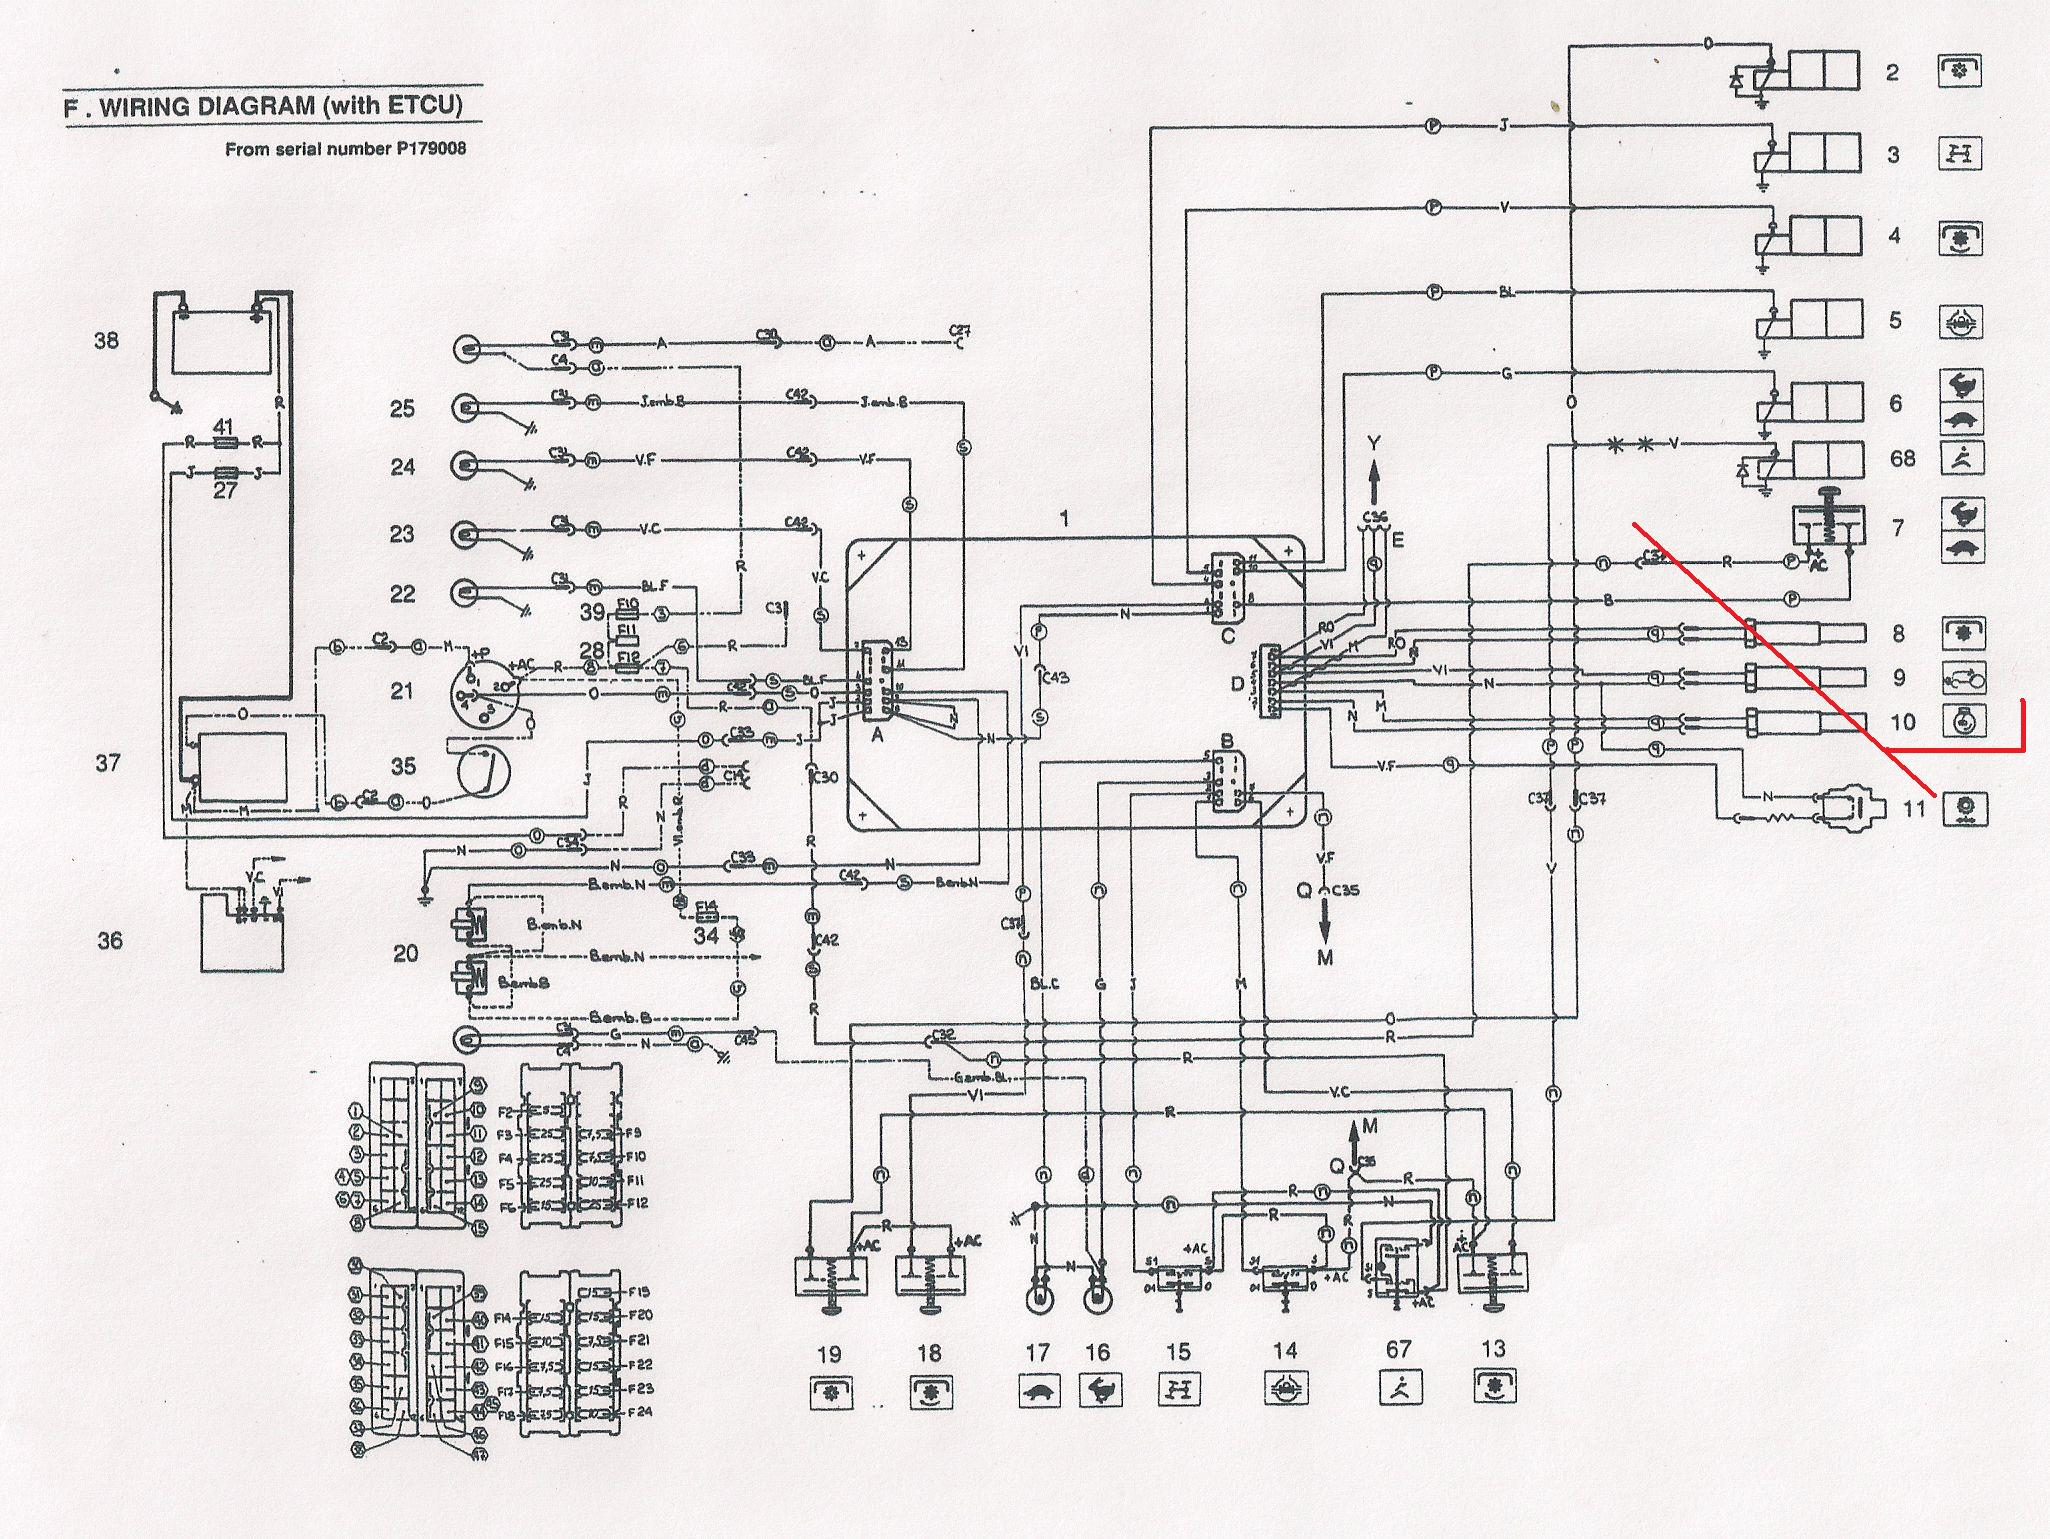 John Deere 320 Mower Diagram Wiring Will Be A Thing 330 Lawn Tractor Manual